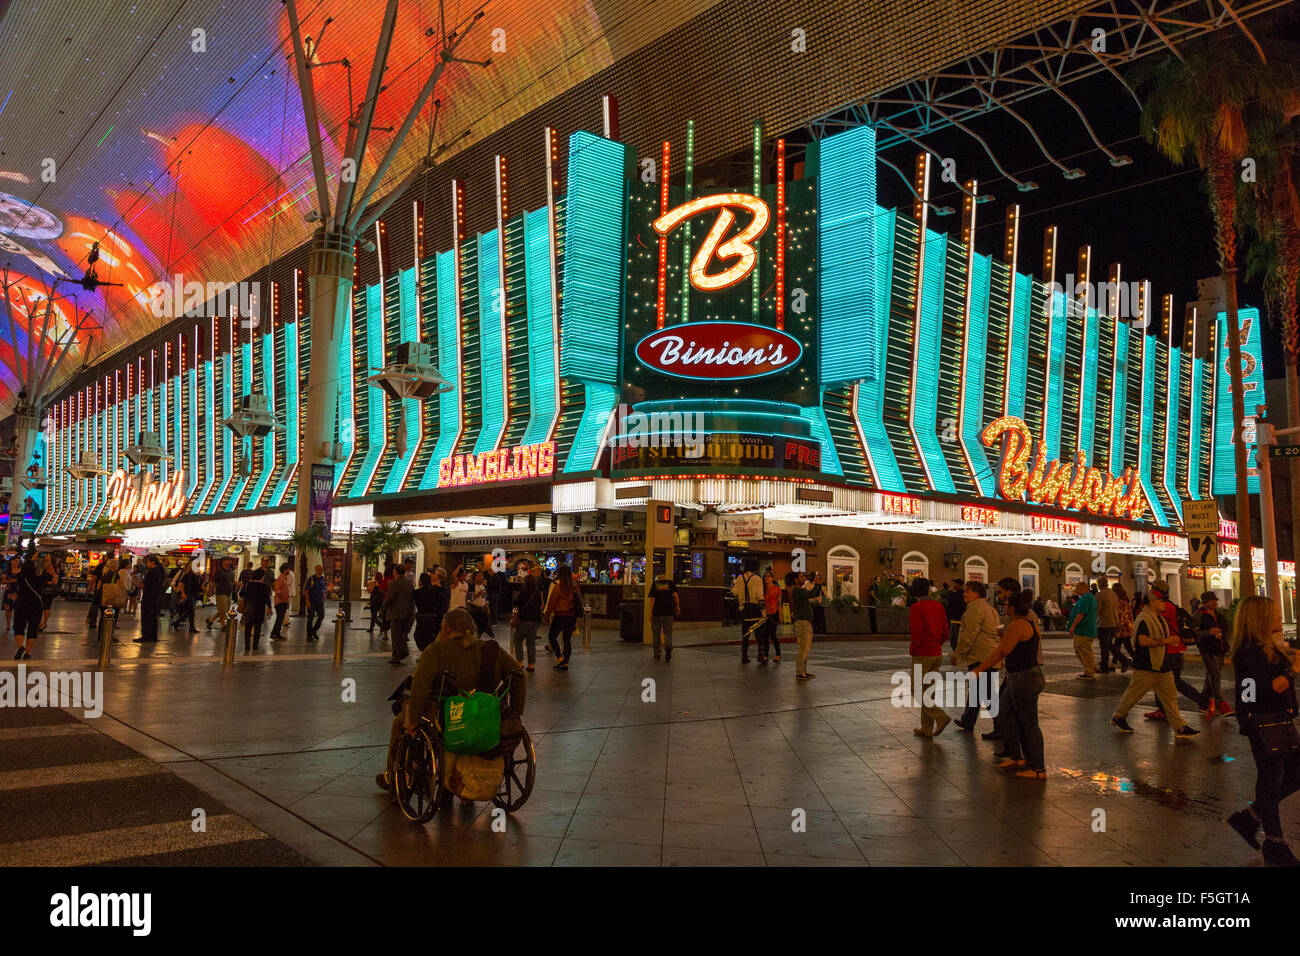 Binions Casino High Resolution Stock Photography And Images Alamy